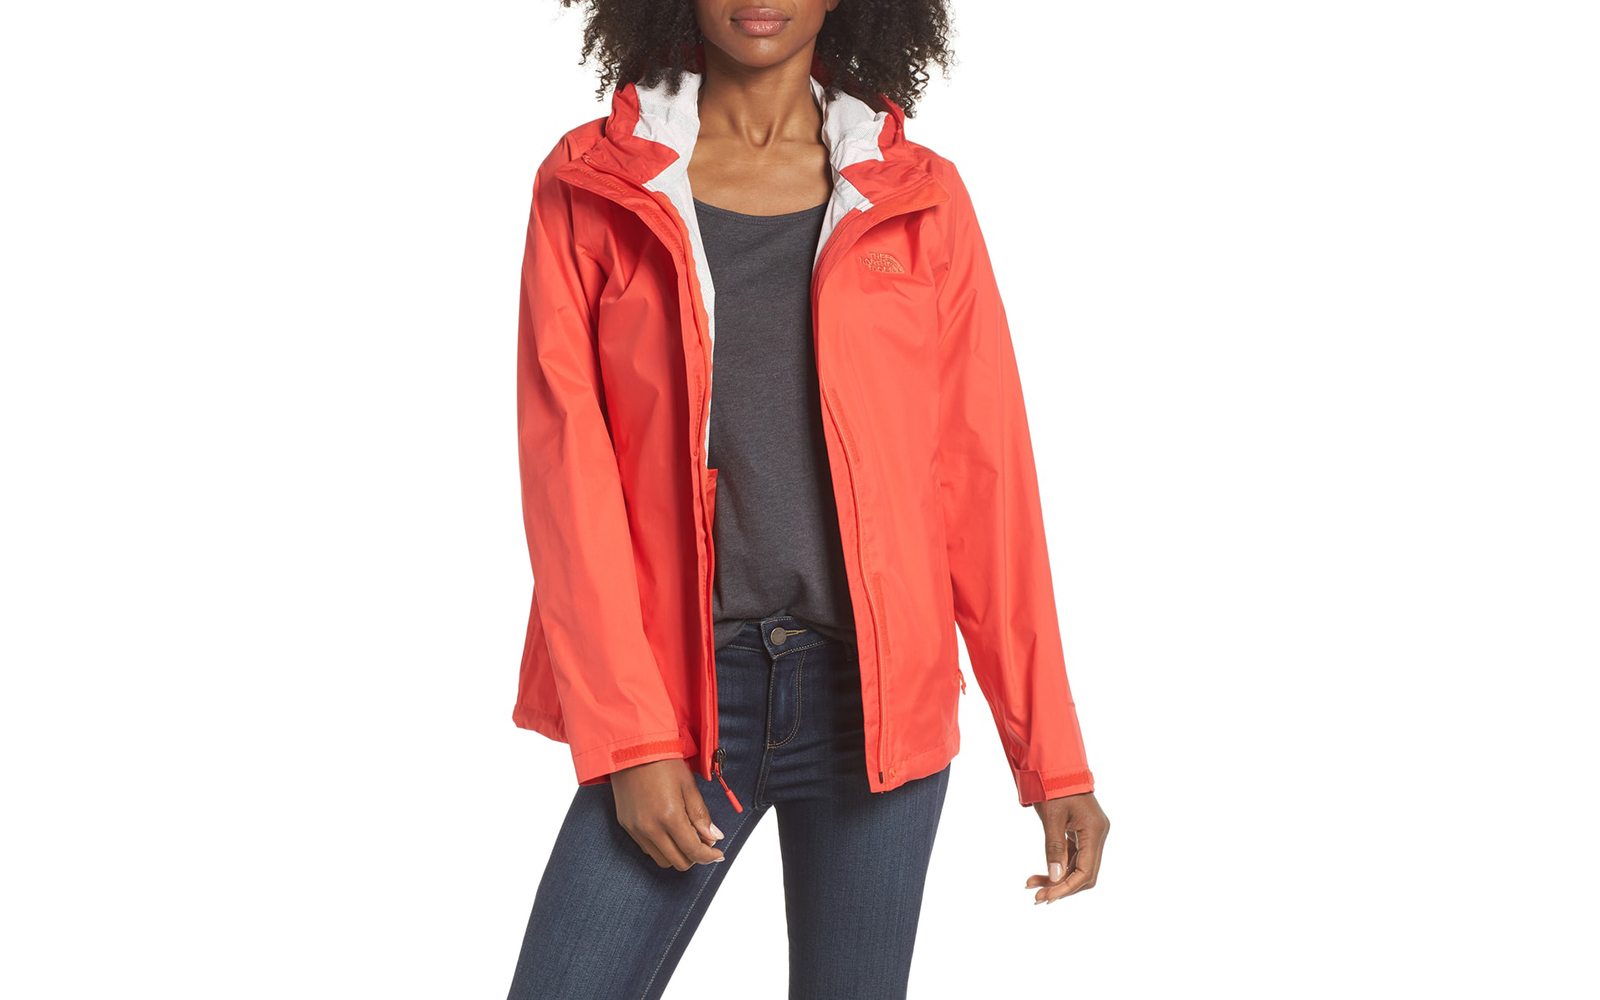 83780dad3 14 Best Women's Rain Jackets, According to Customers | Travel + Leisure